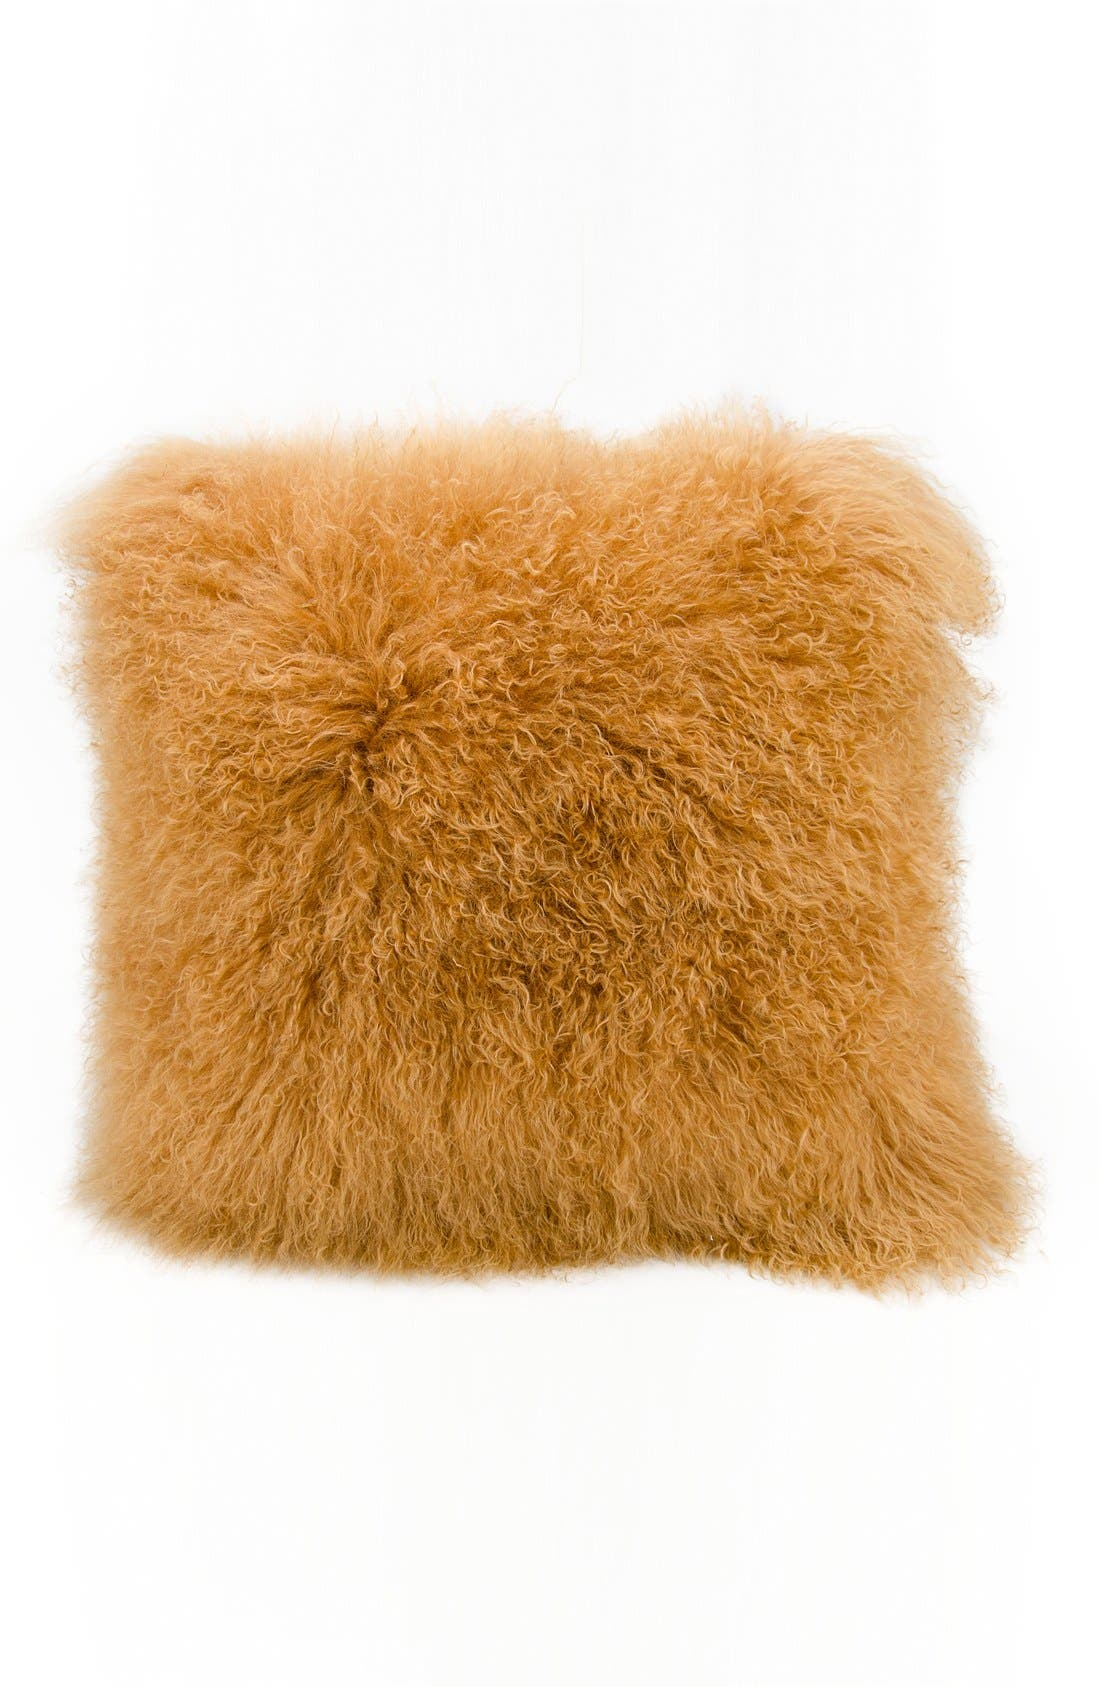 Alternate Image 1 Selected - Mina Victory Genuine Tibetan Wool Shearling Pillow